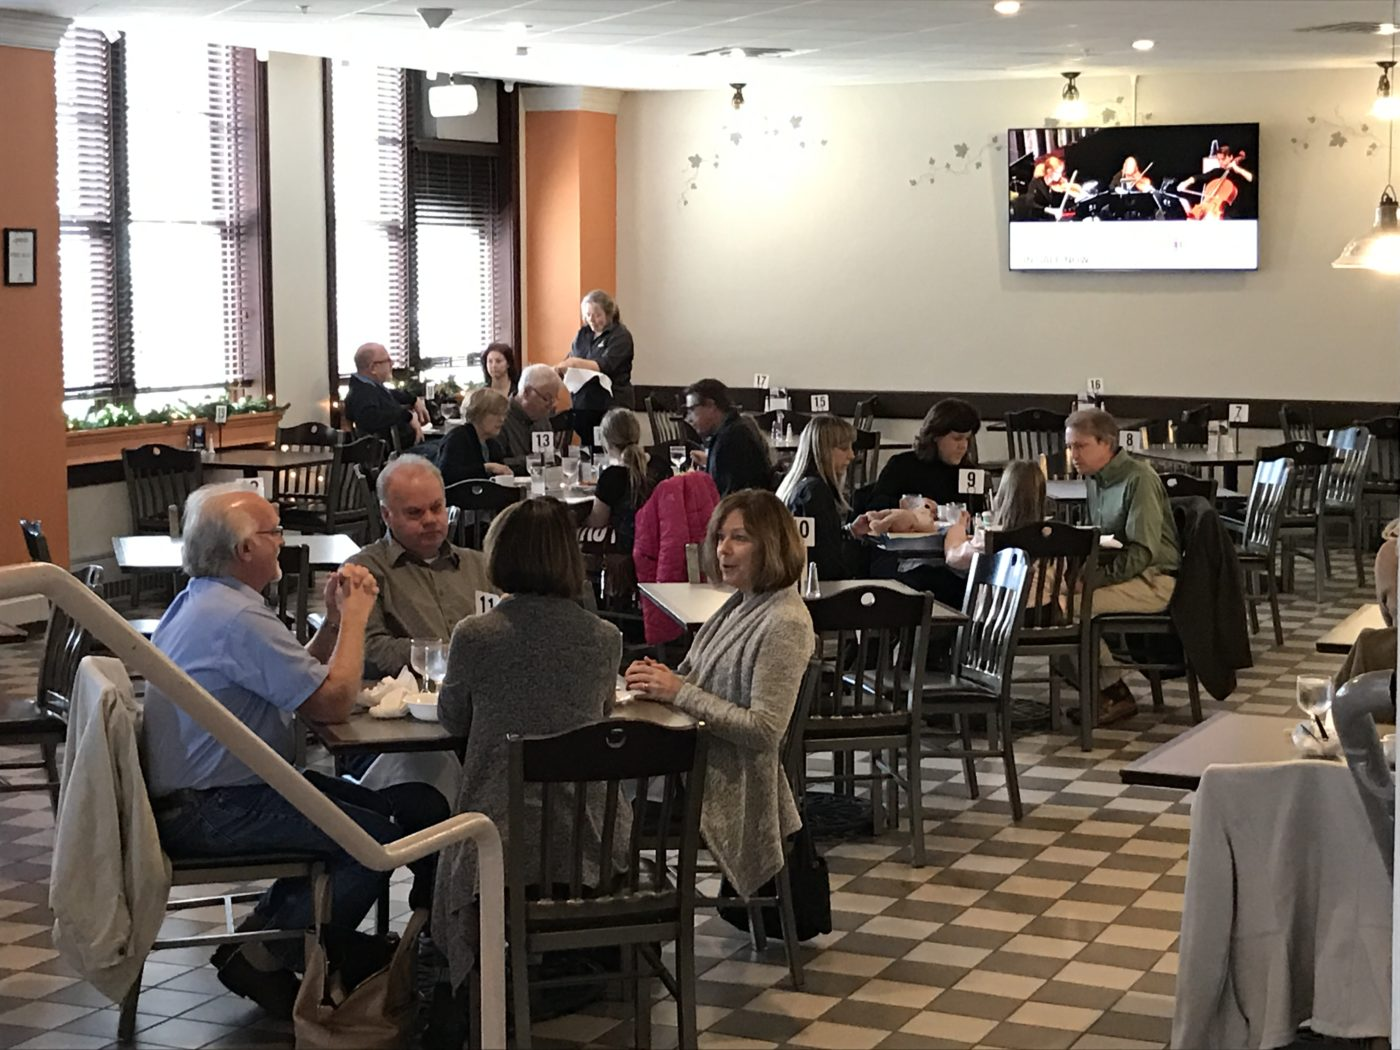 Image of Sunday brunch at Leonardo's Cafe